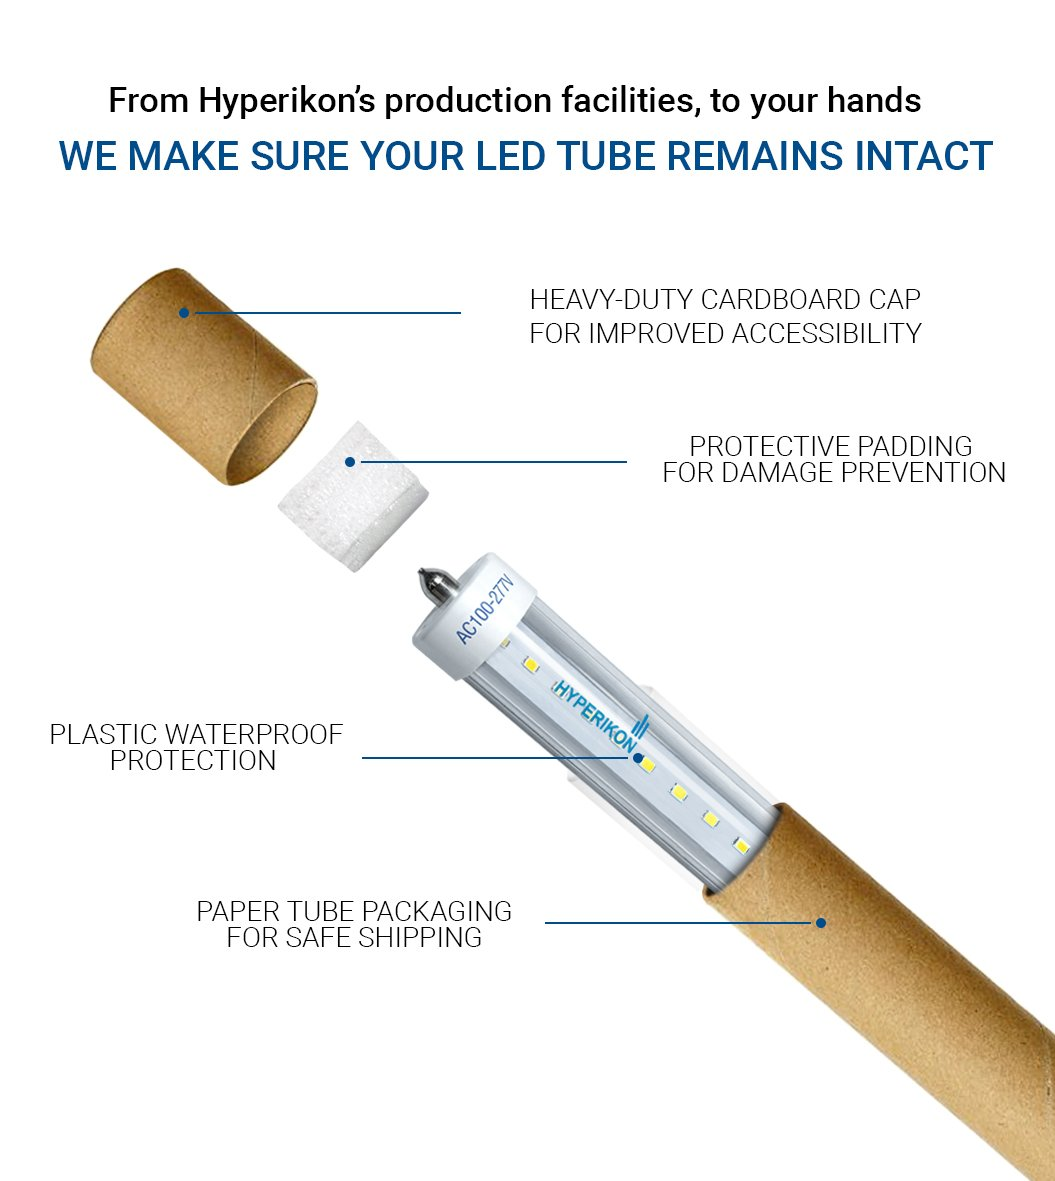 Hyperikon T8 T10 T12 8ft LED Tube Light, 36W (75W Equiv.), Dual-End Powered, Ballast Bypass, Shatterproof, Fluorescent Replacement, 5000k, Clear, 4400 Lumens, Workshop, Warehouse, Garage - 12 Pack by Hyperikon (Image #10)